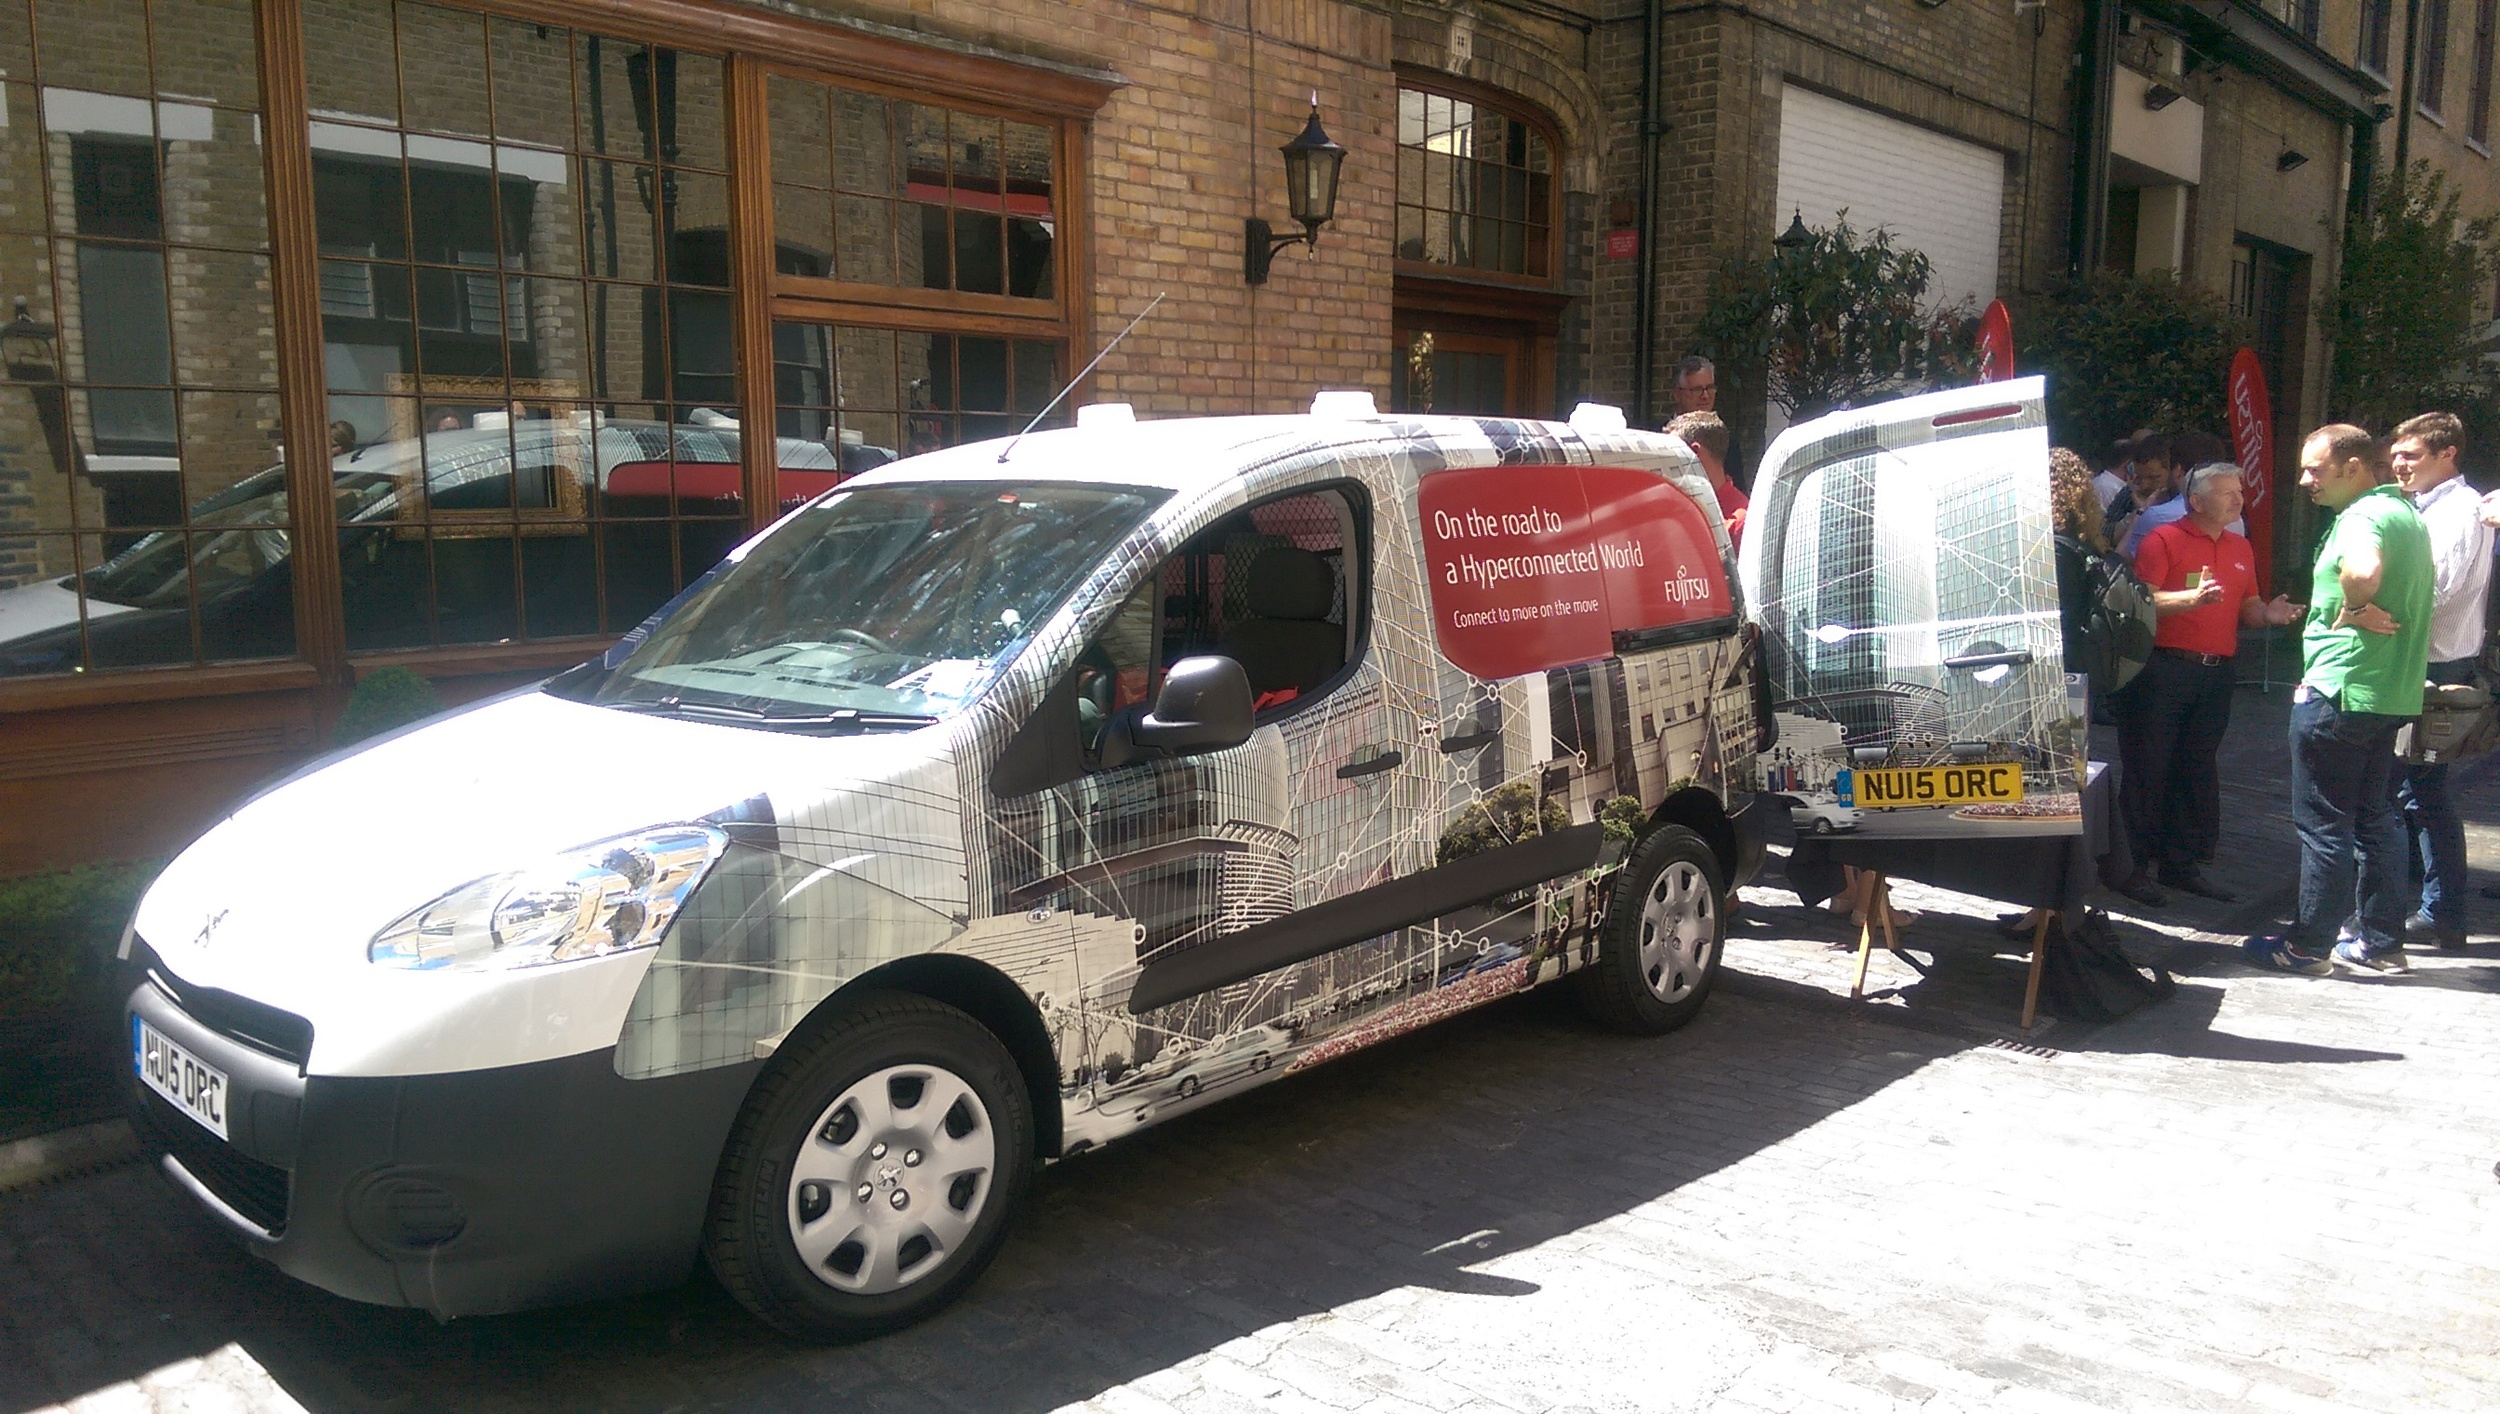 Fujitsu rolled into London for one of the first events of their 2015 World Tour. Hyperconnectivity and both its impact and potential were key themes.